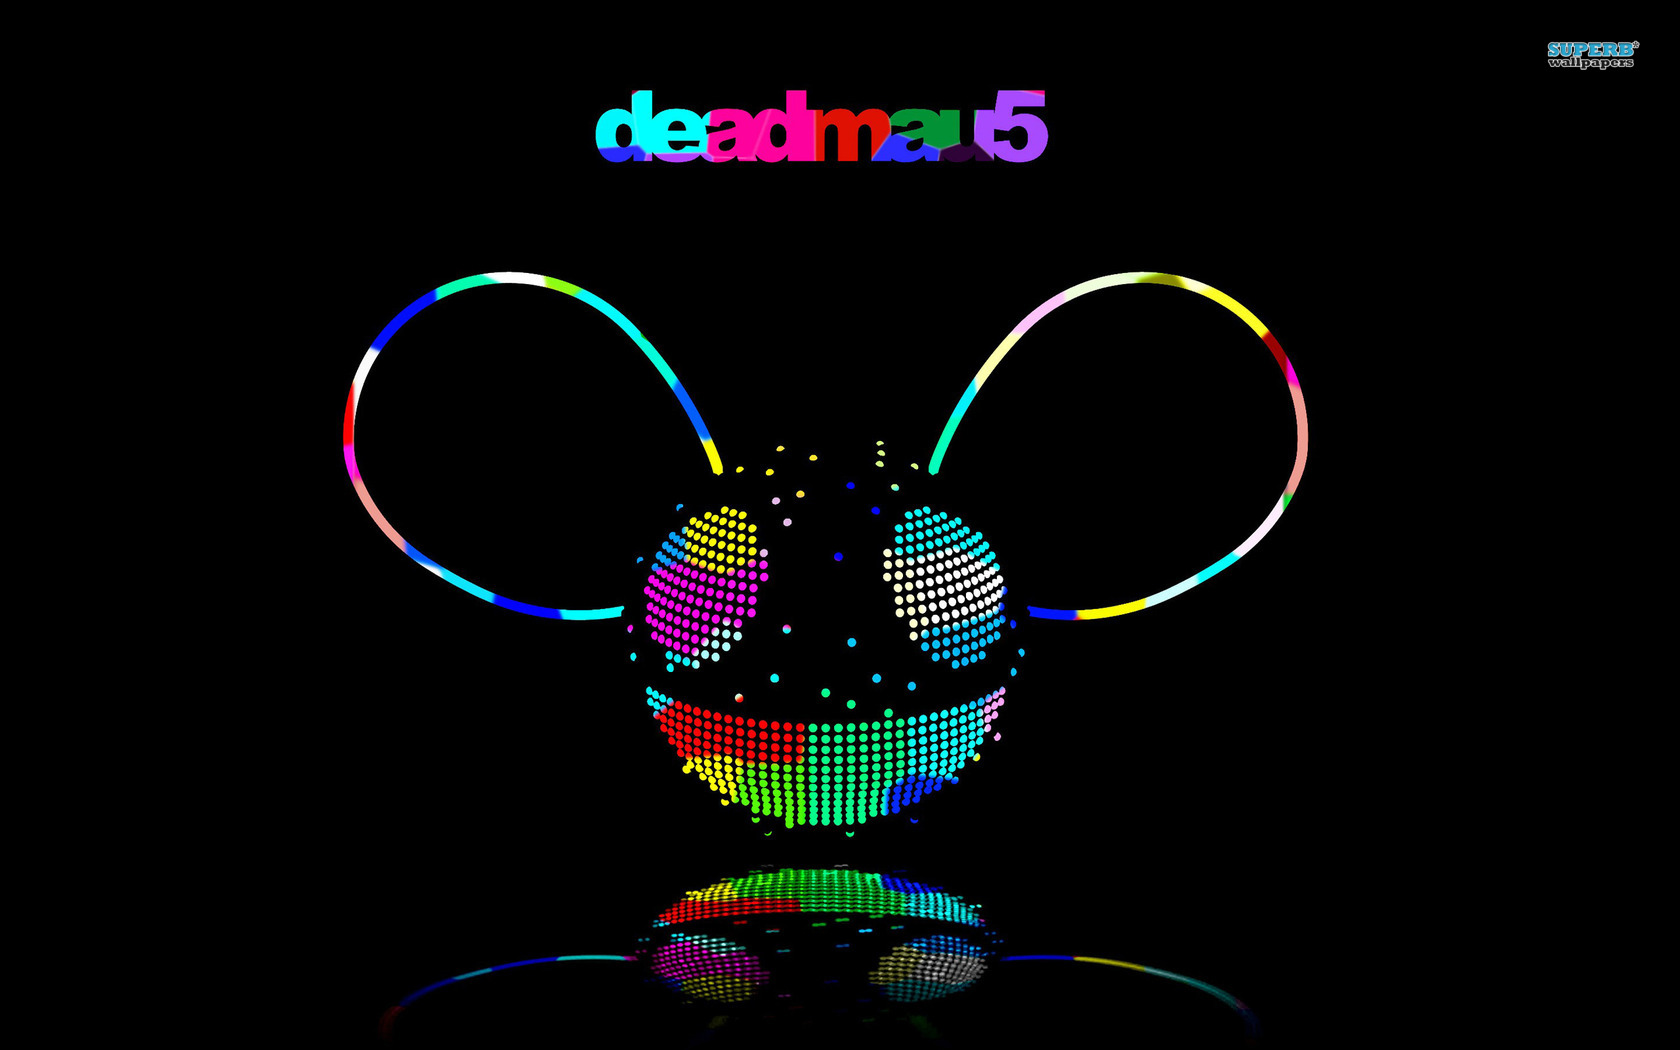 Deadmau5 wallpaper 1680x1050